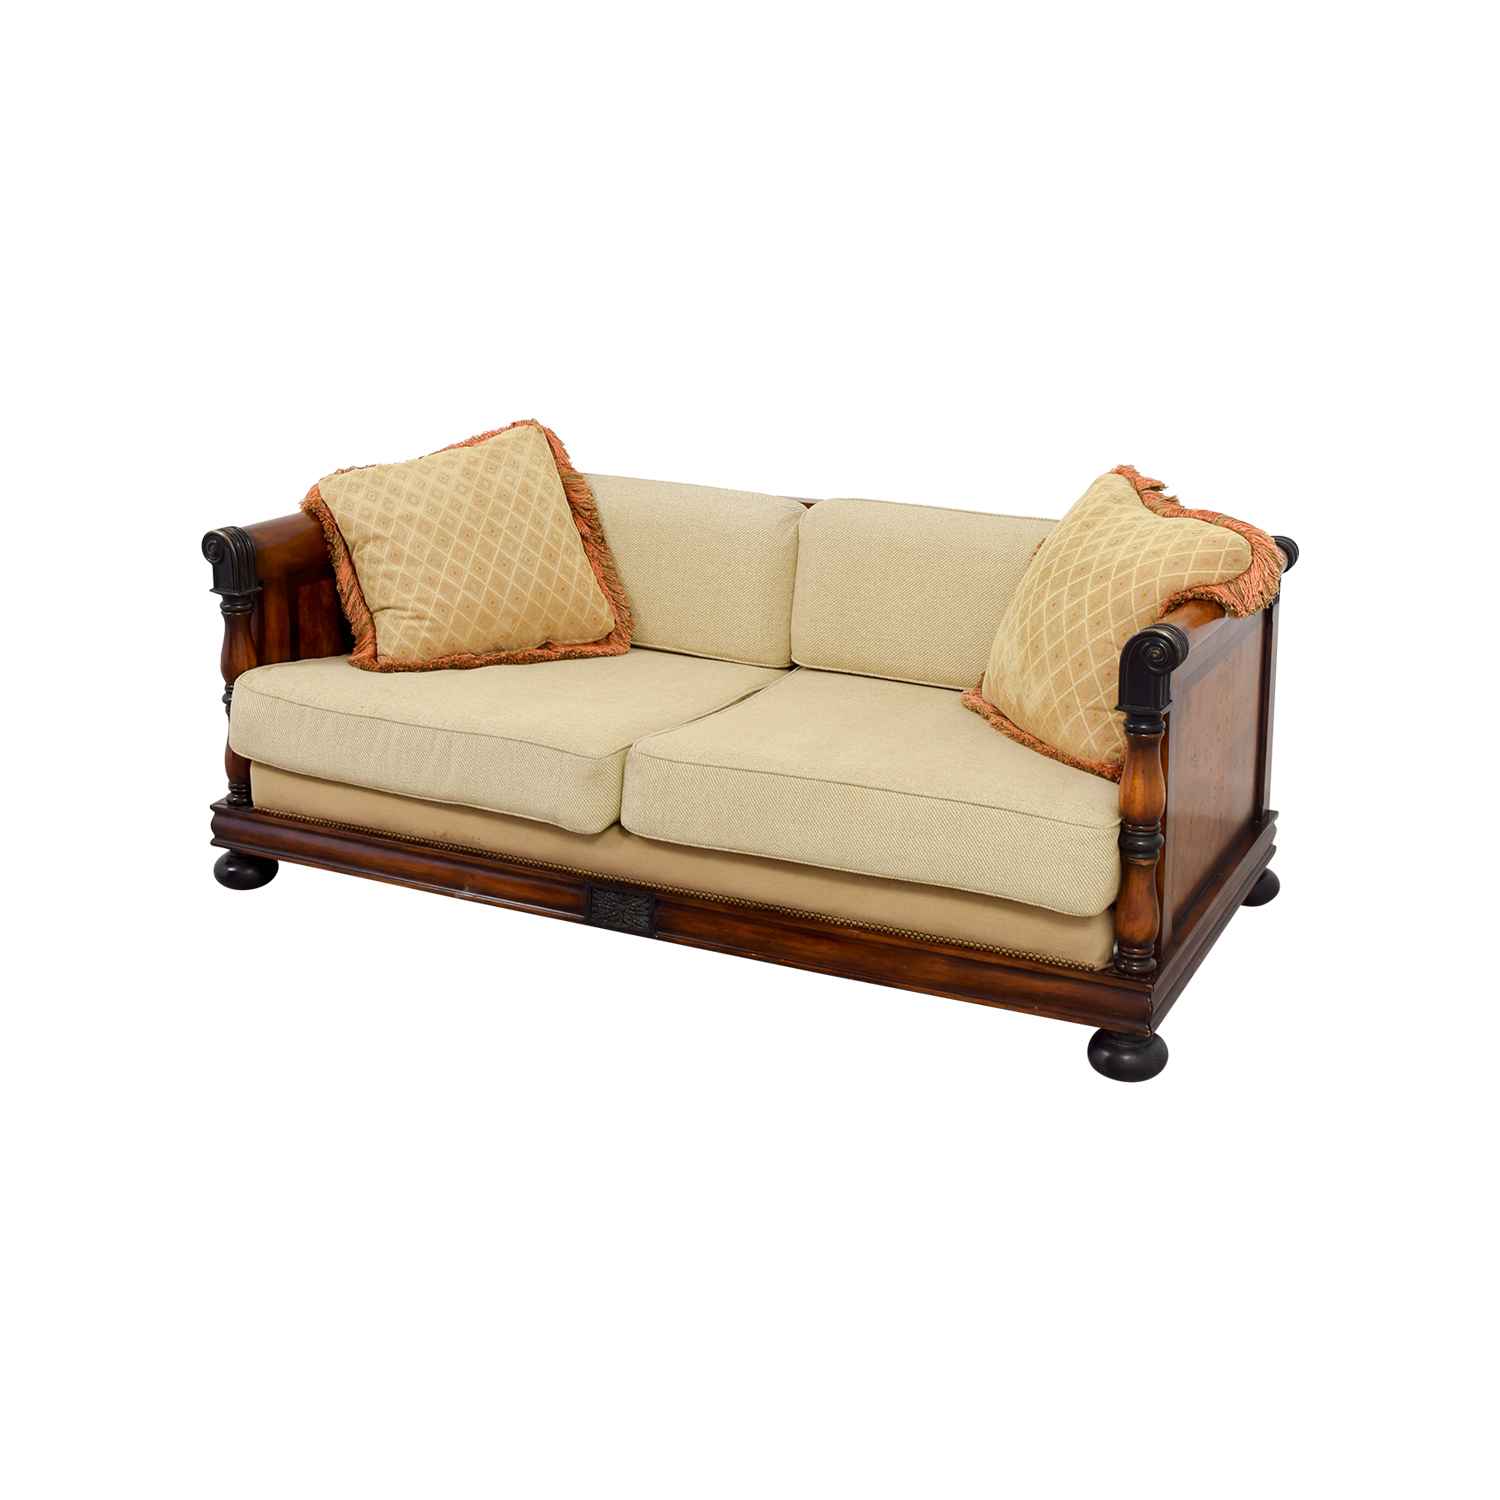 online wooden sofa dwr tuck sleeper review sofas set designs sets urban